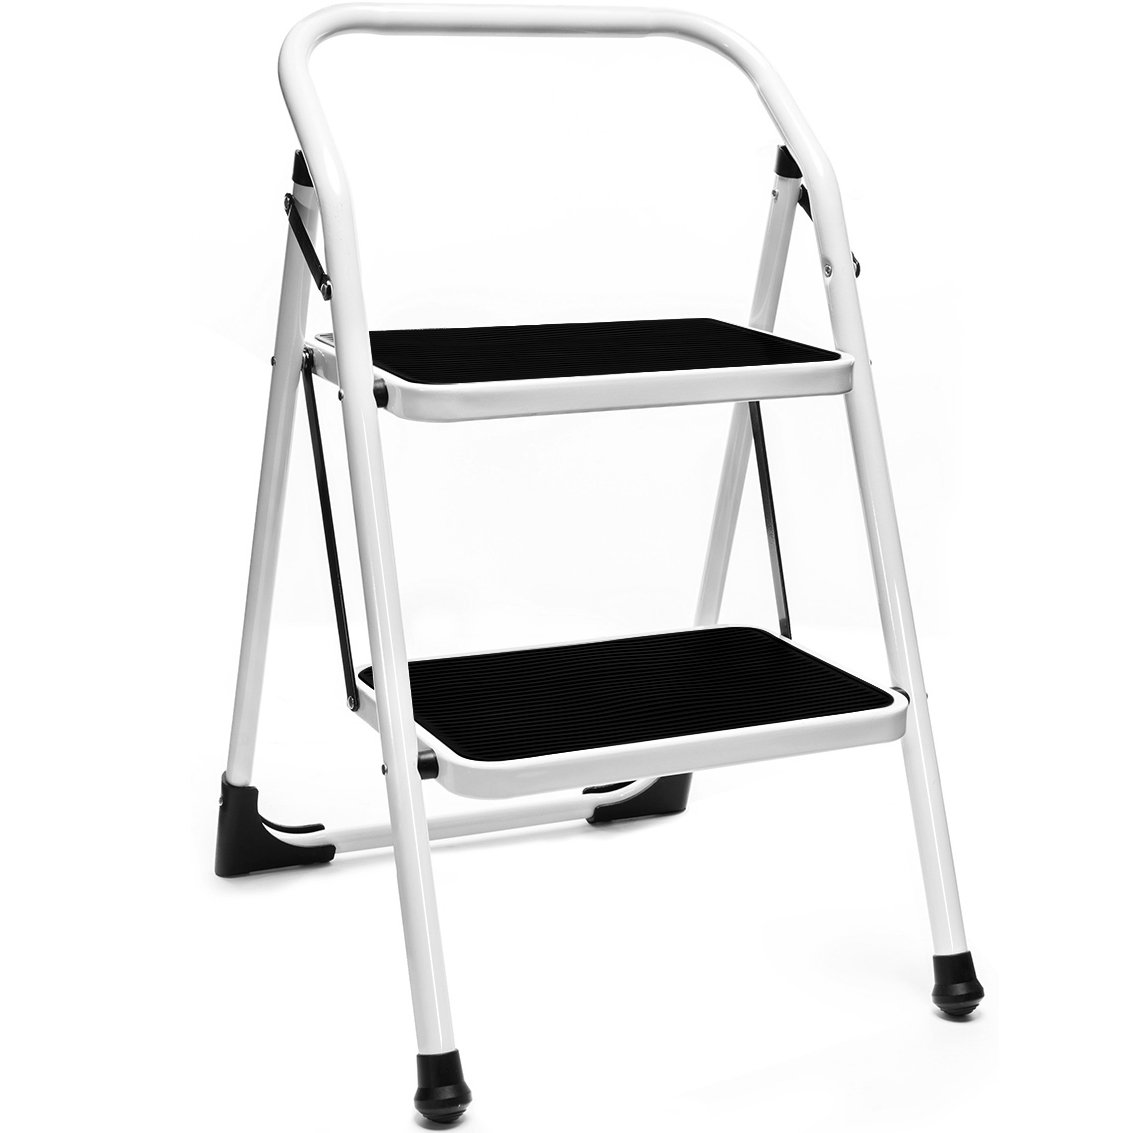 Two Step Ladder Folding Stool Lightweight Steel Handgrip